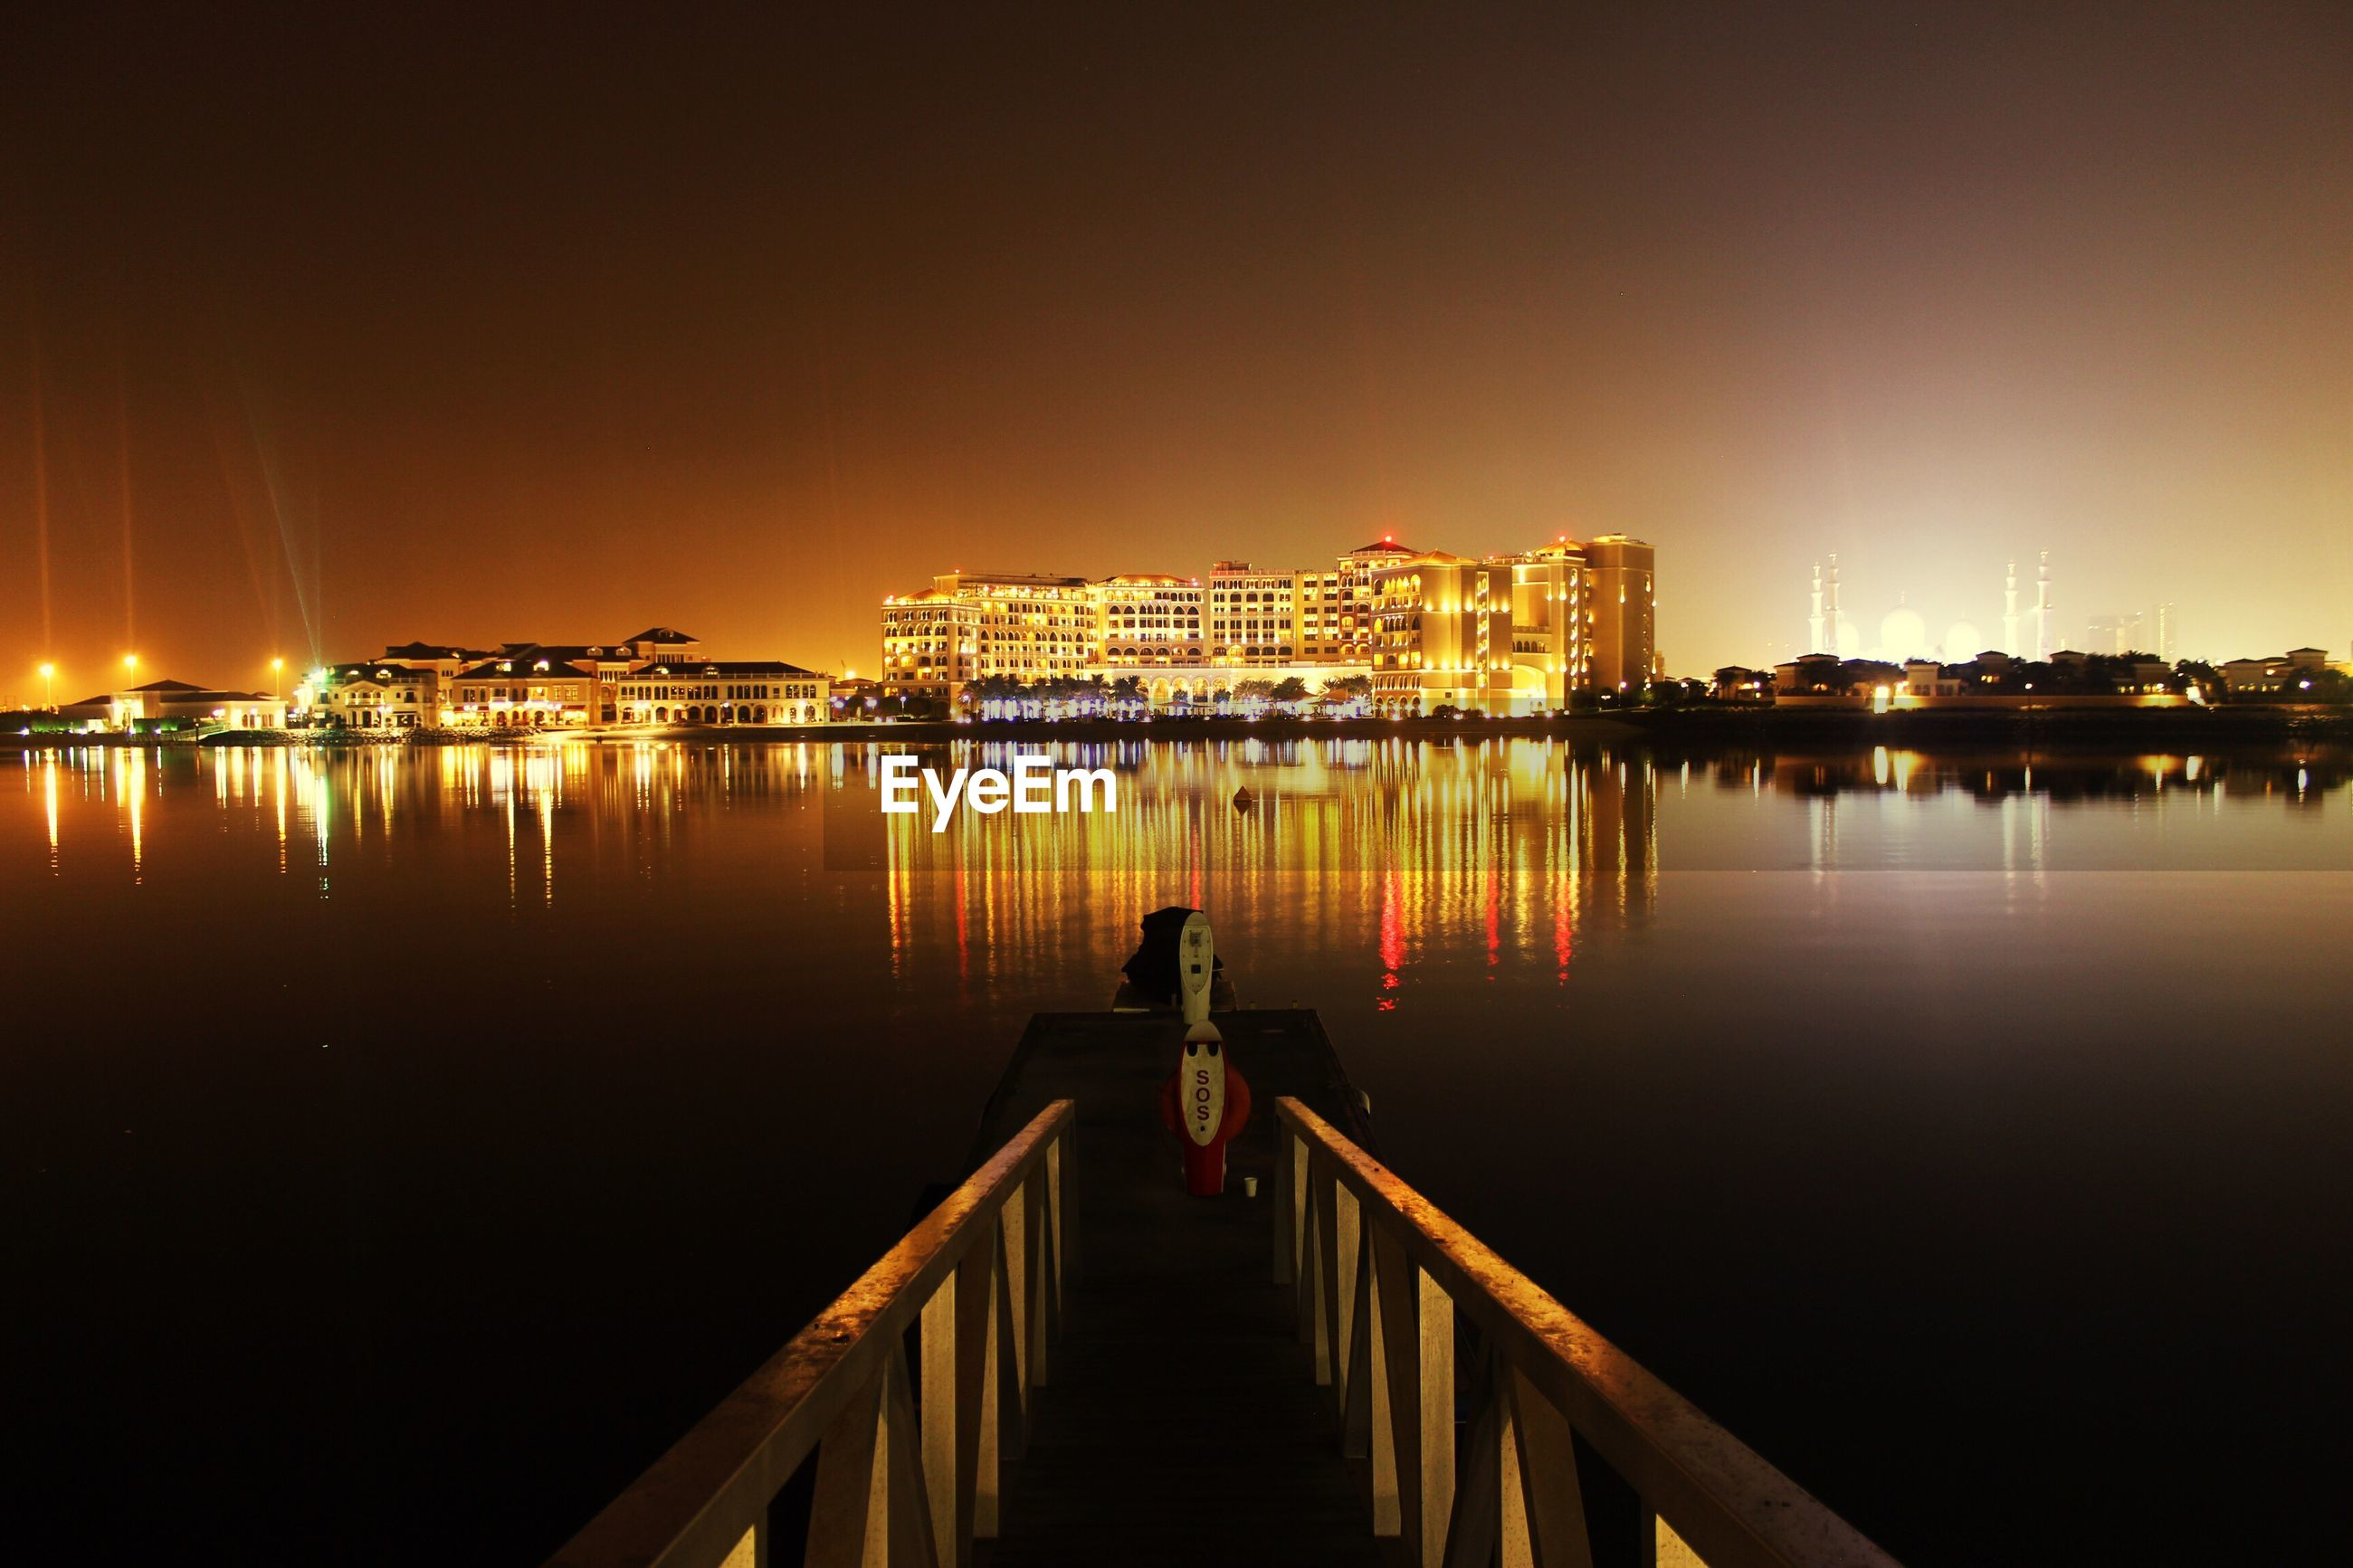 Pier on lake by illuminated buildings against sky at dusk